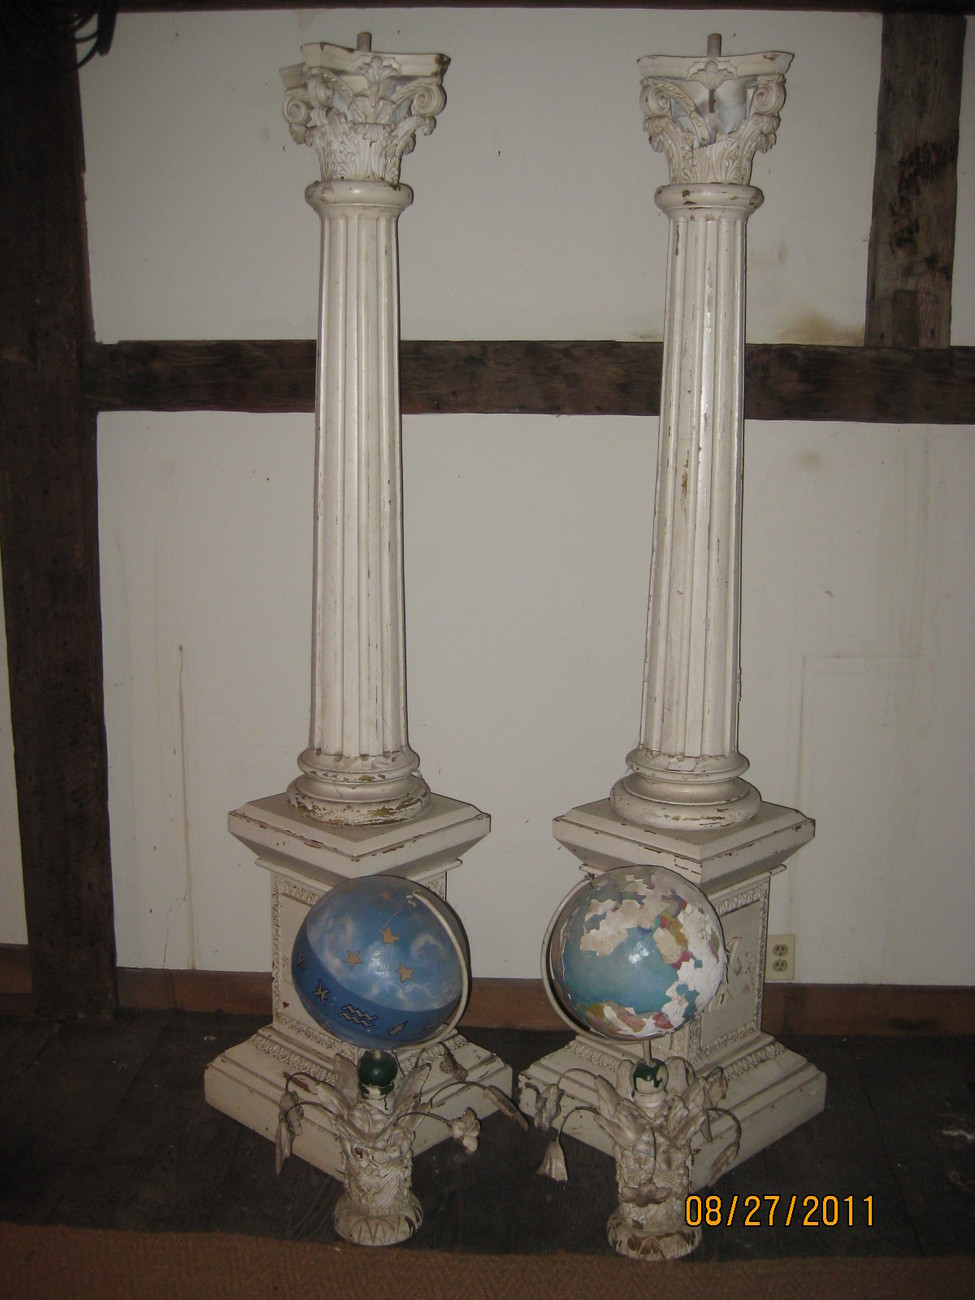 Pair of Masonic Collumns 7' high